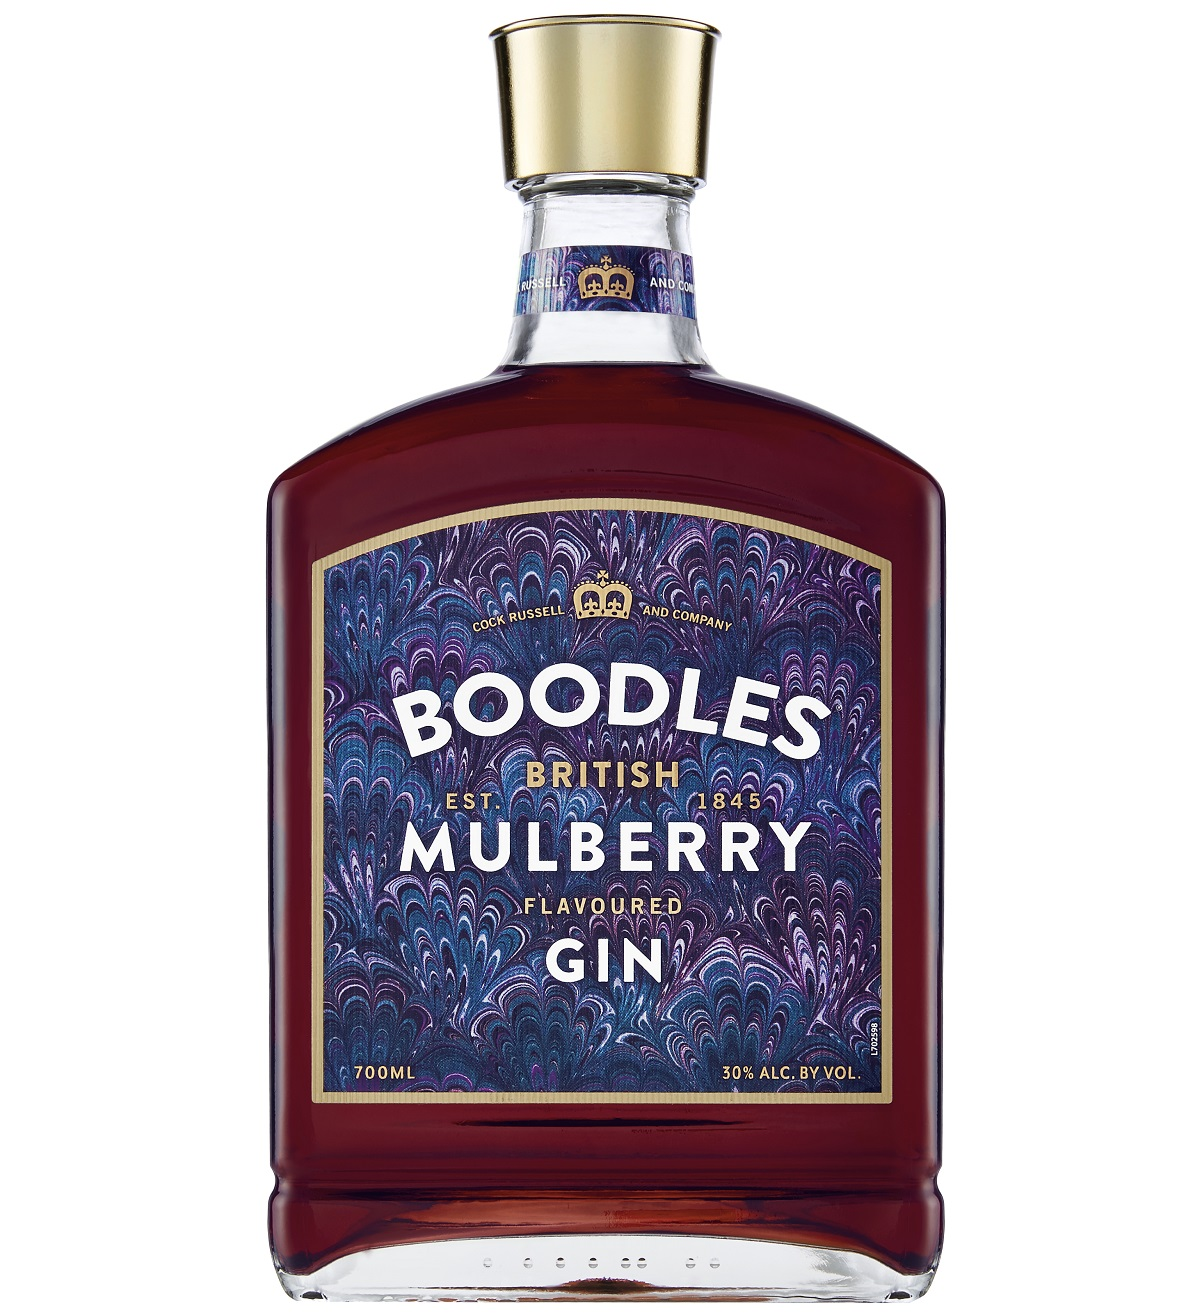 The Coolest Gins of 2020: Boodles Mulberry Flavoured Gin